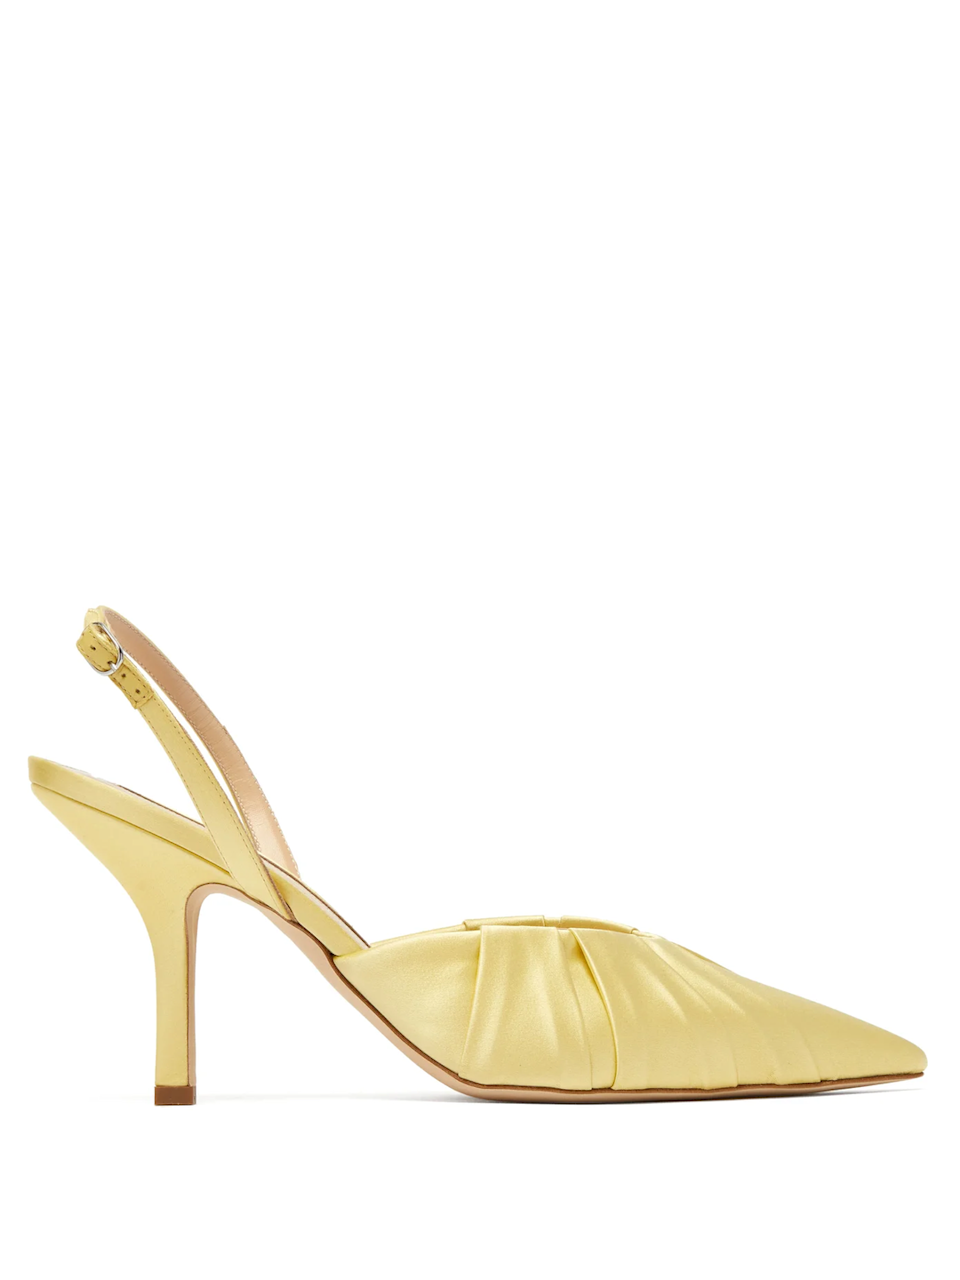 """<p>Midnight 00</p><p><a href=""""https://www.matchesfashion.com/us/products/Midnight-00-Gathered-point-toe-satin-slingback-pumps-1334499"""" rel=""""nofollow noopener"""" target=""""_blank"""" data-ylk=""""slk:Matchesfashion.com"""" class=""""link rapid-noclick-resp"""">Matchesfashion.com</a></p><p>$870.00</p><p>Bet you didn't expect your next nighttime shoe to be this color.</p>"""